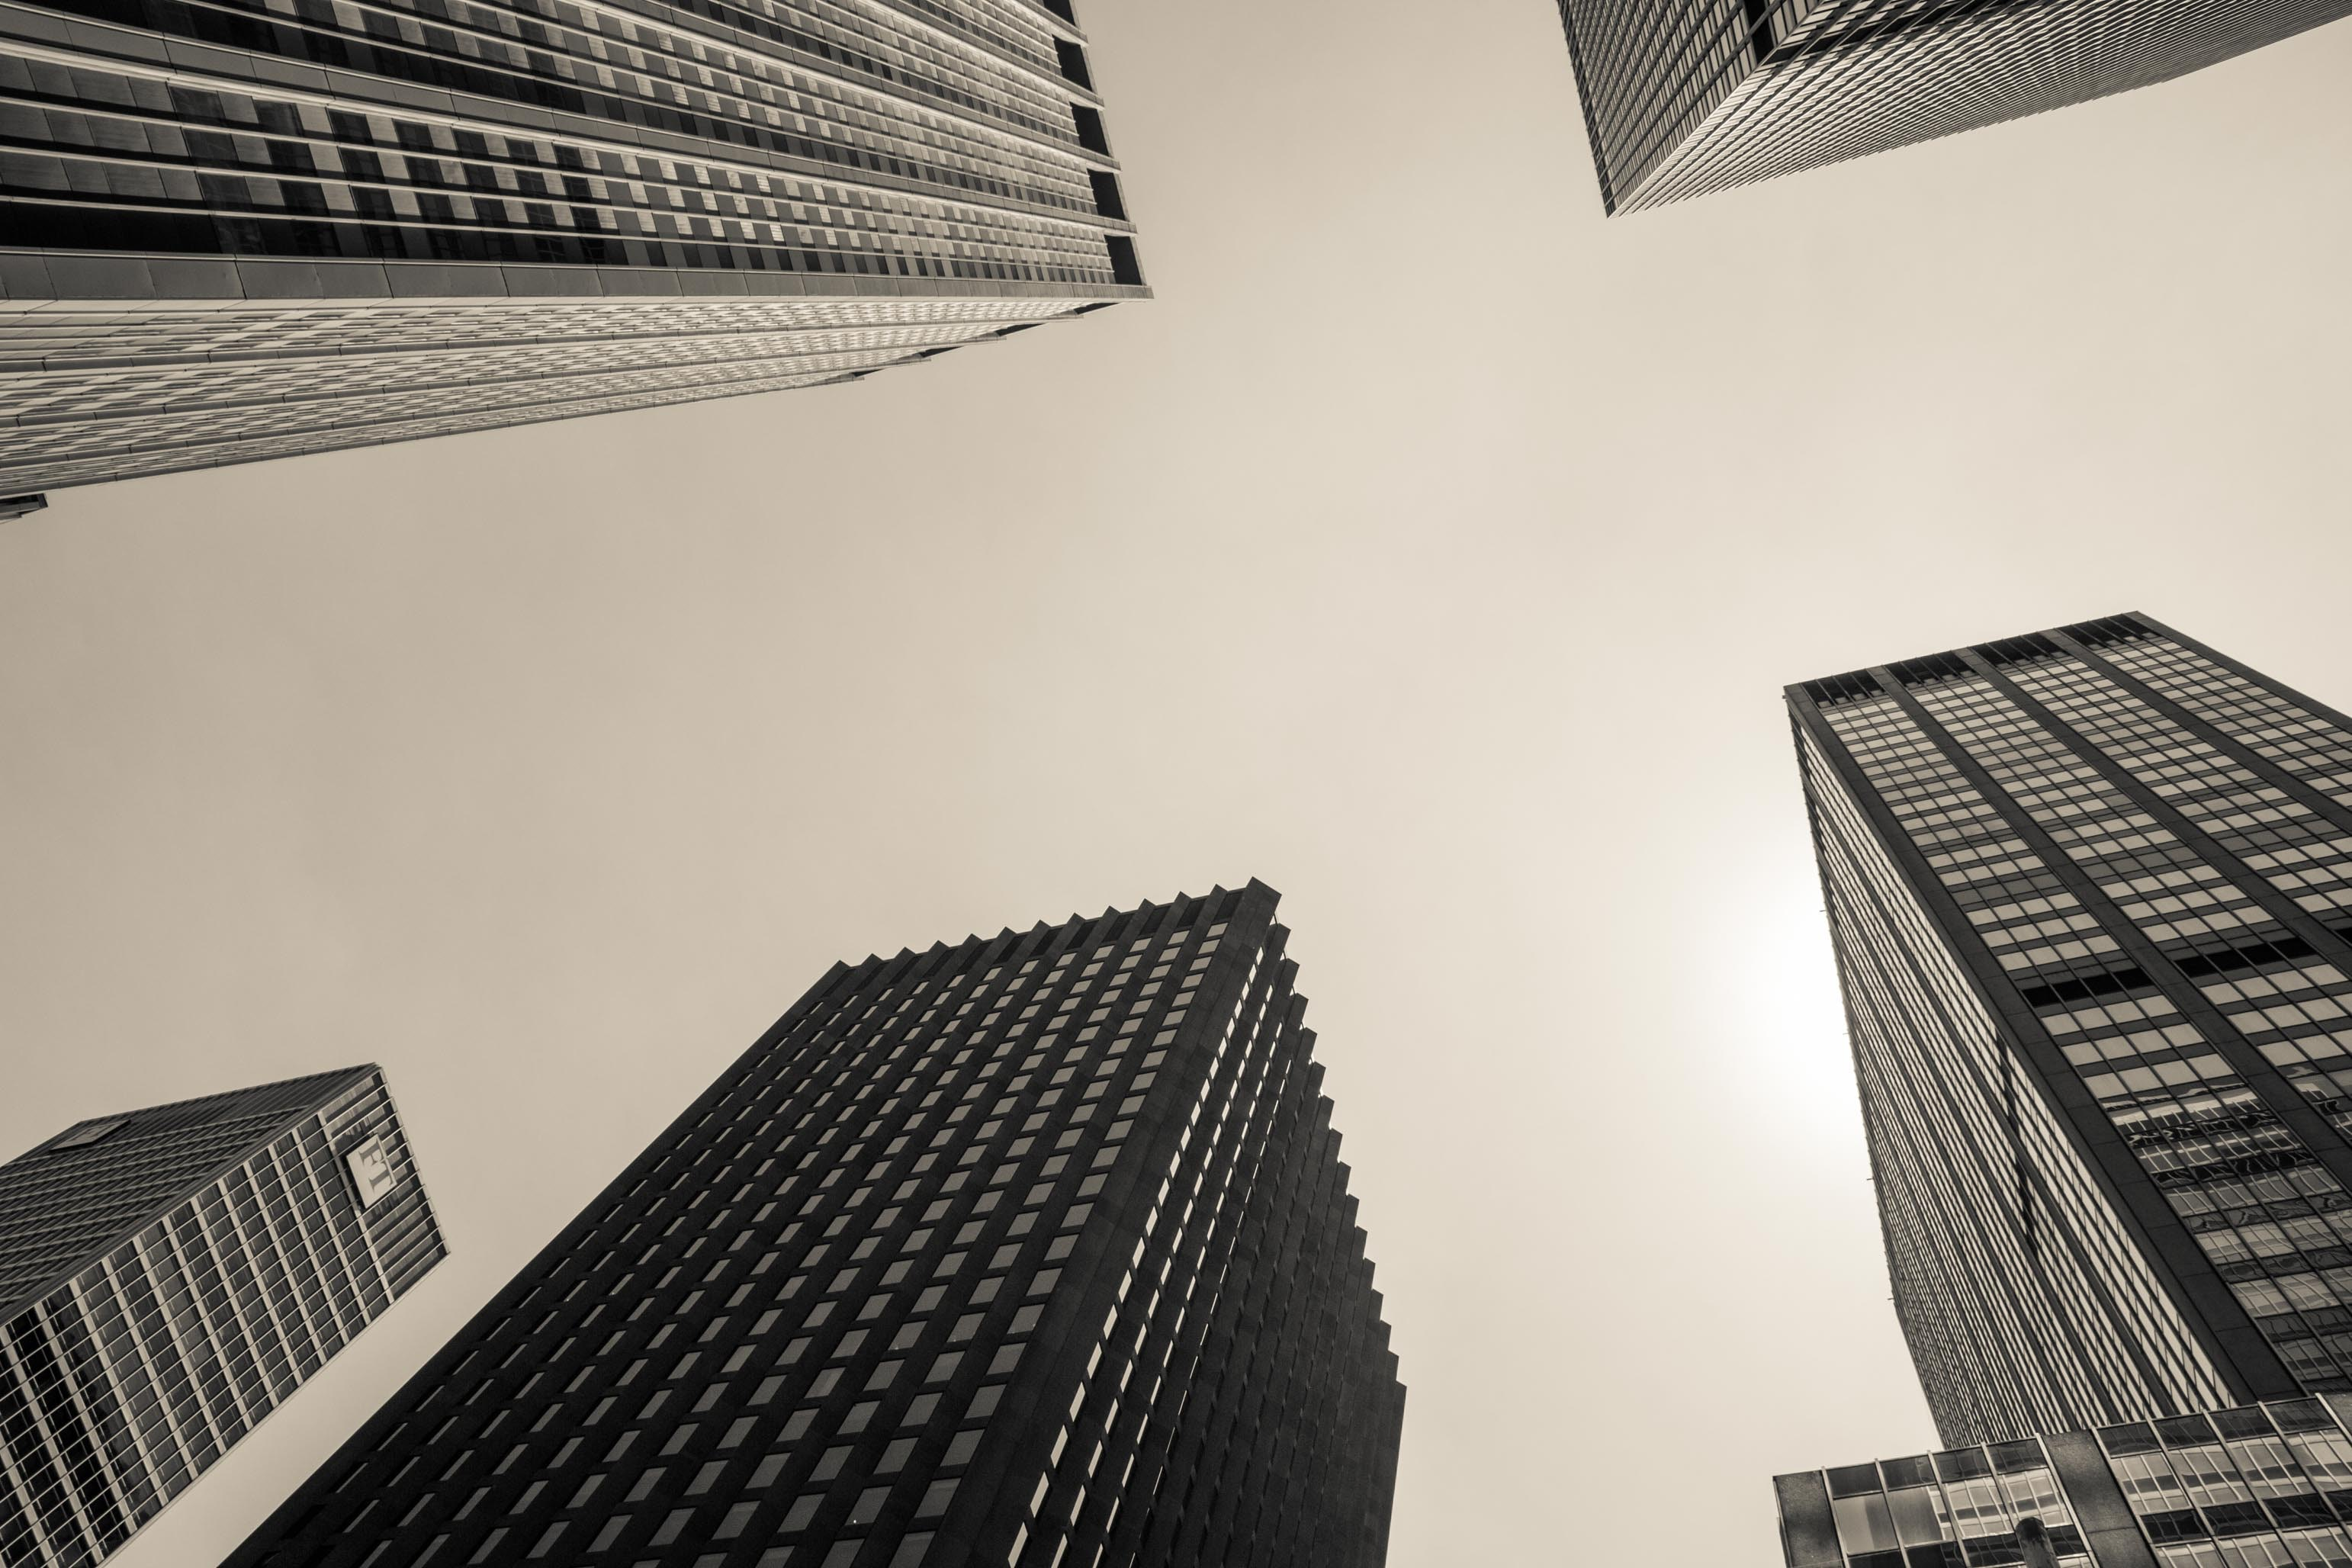 low angle and grayscale photography of high-rise buildings